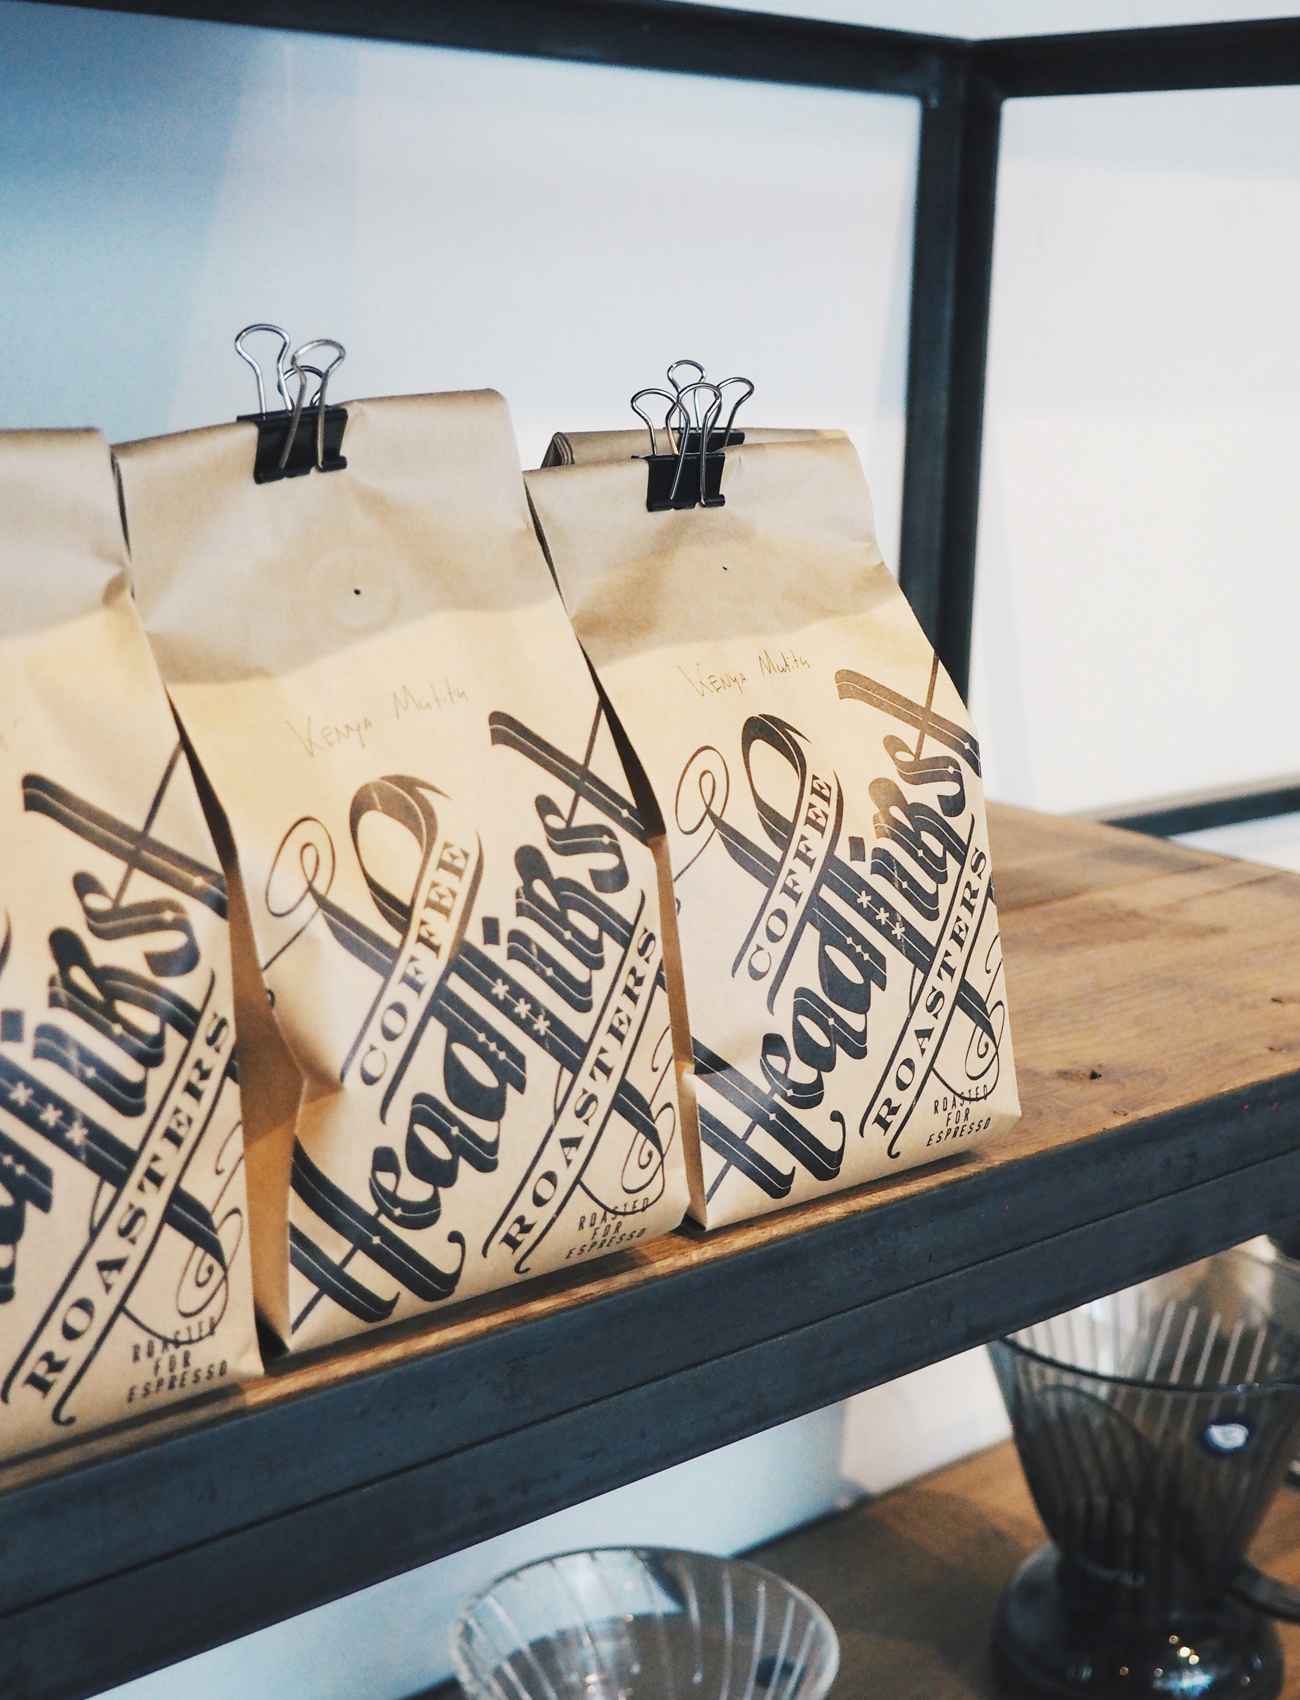 Headfirst coffee roasters - Amsterdam city guide